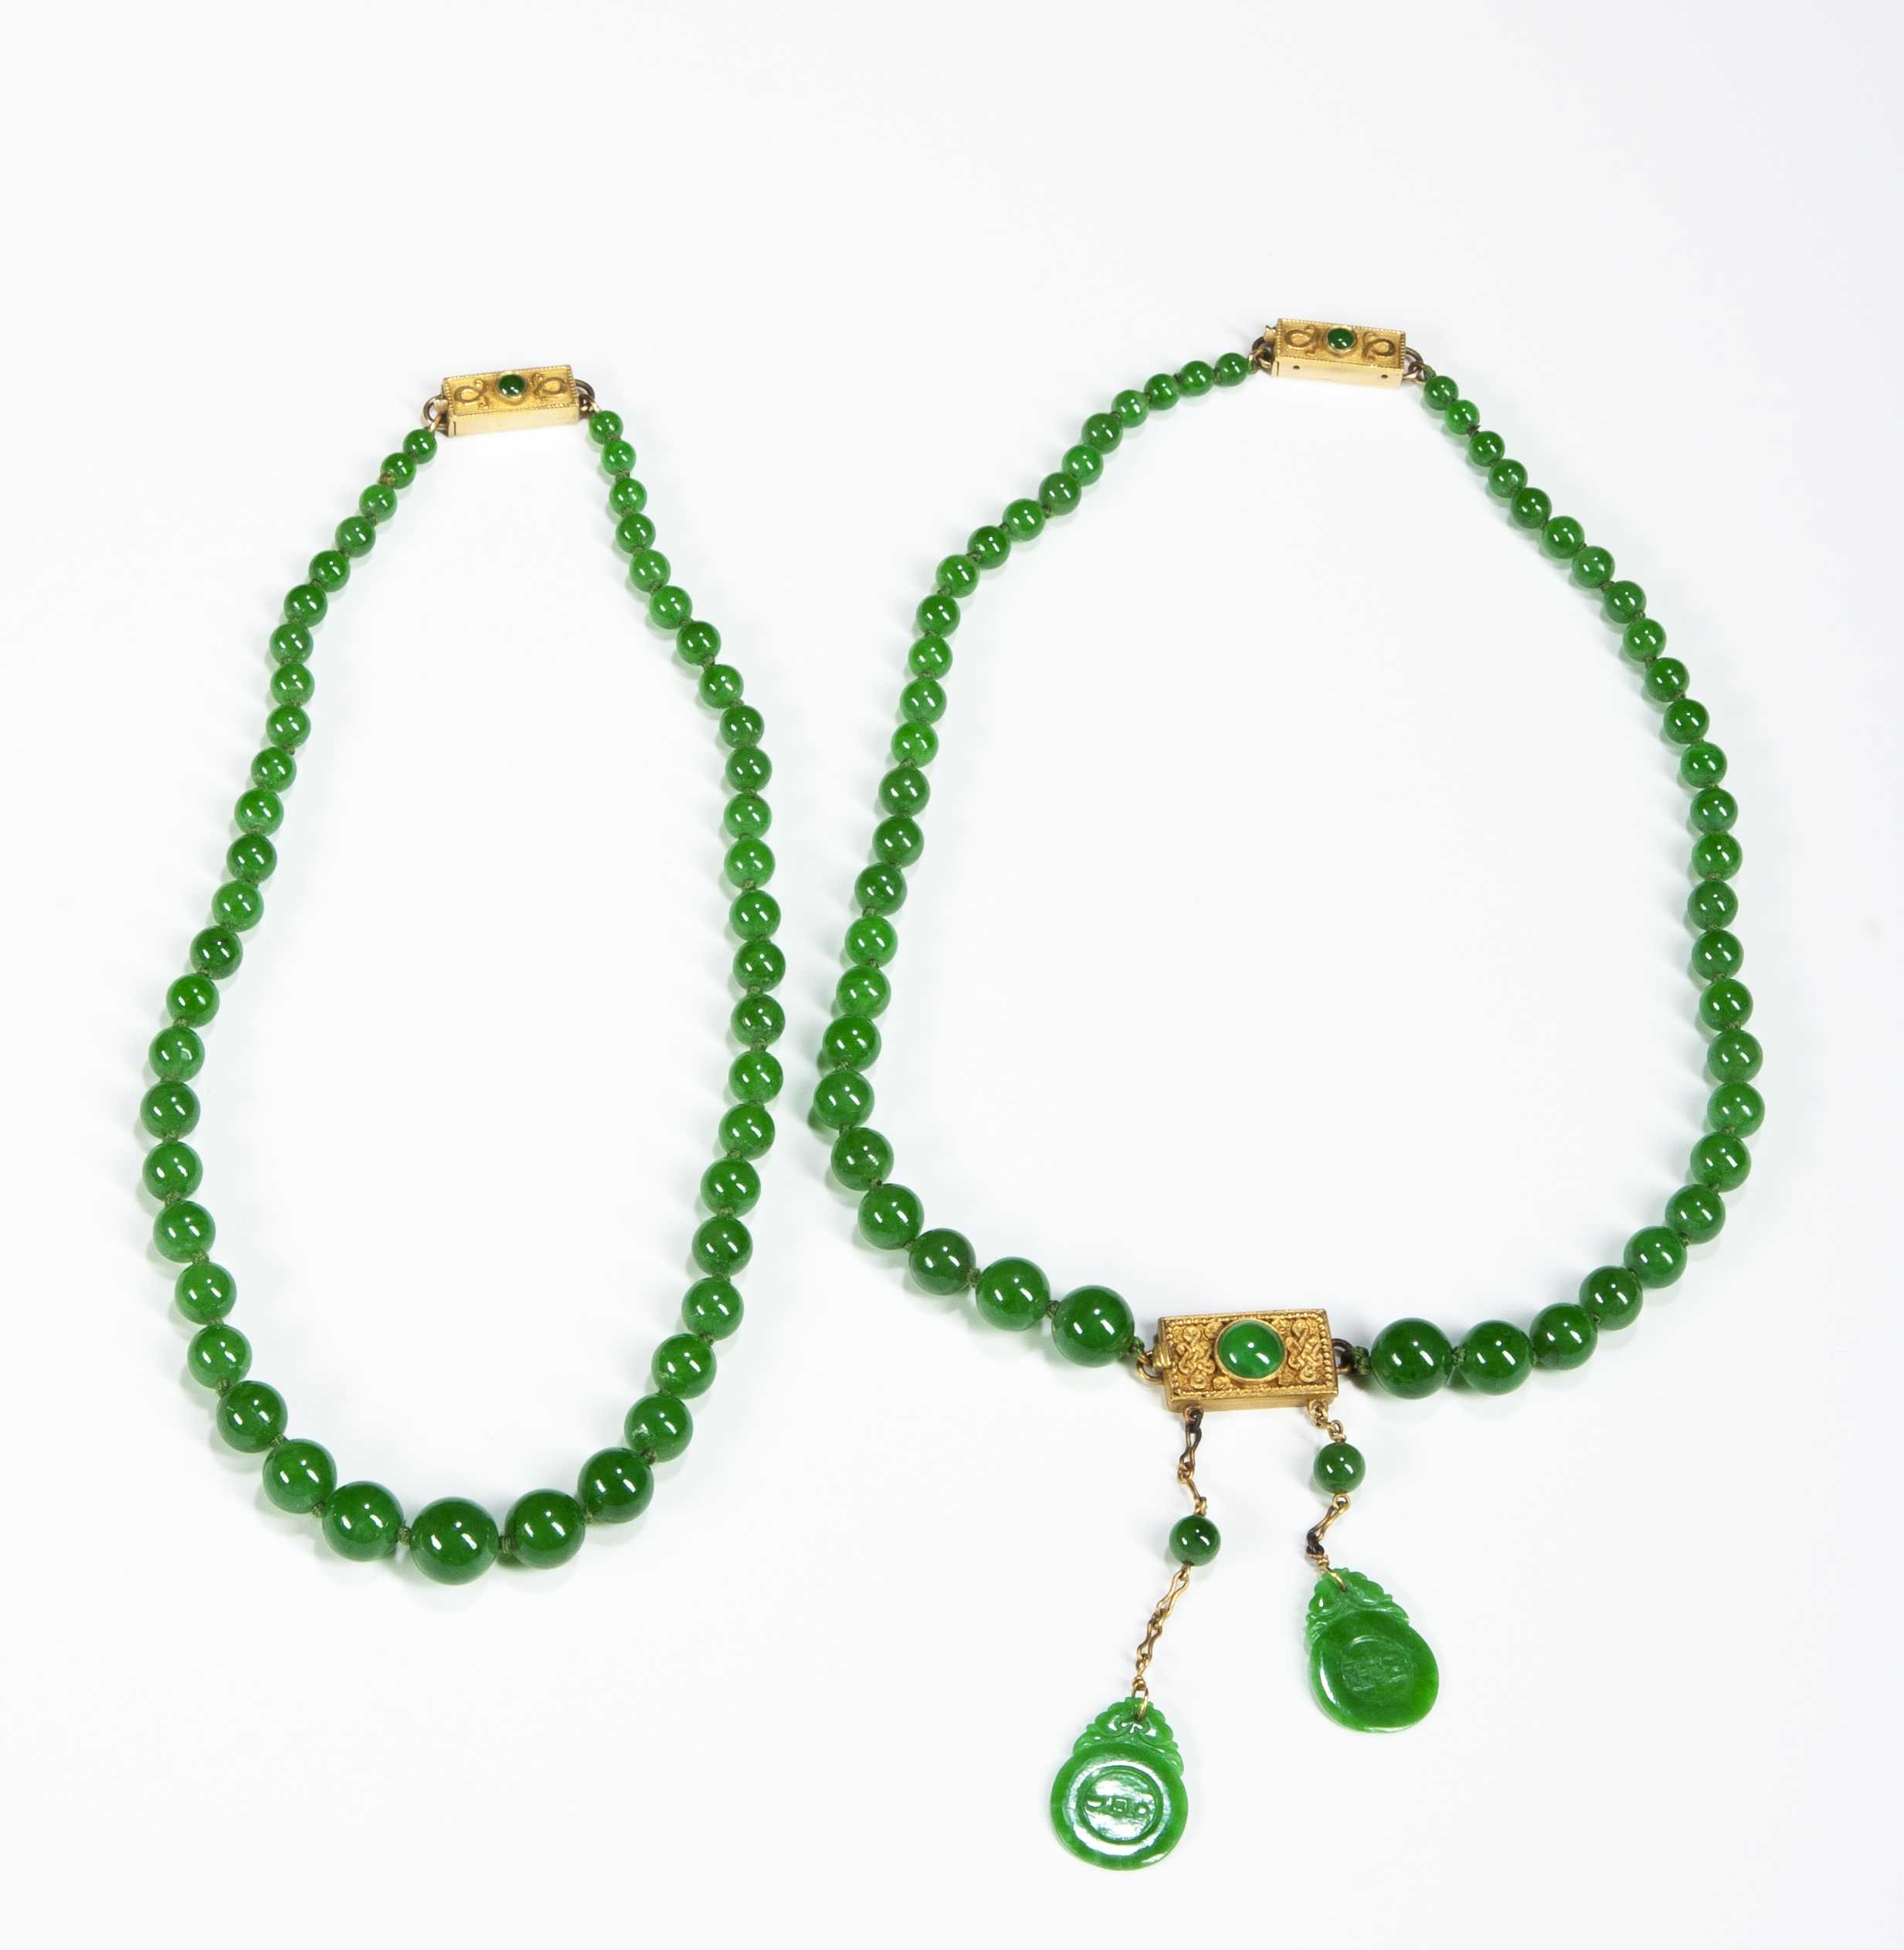 statement collections green stone jade original products womens necklace jewelry long large